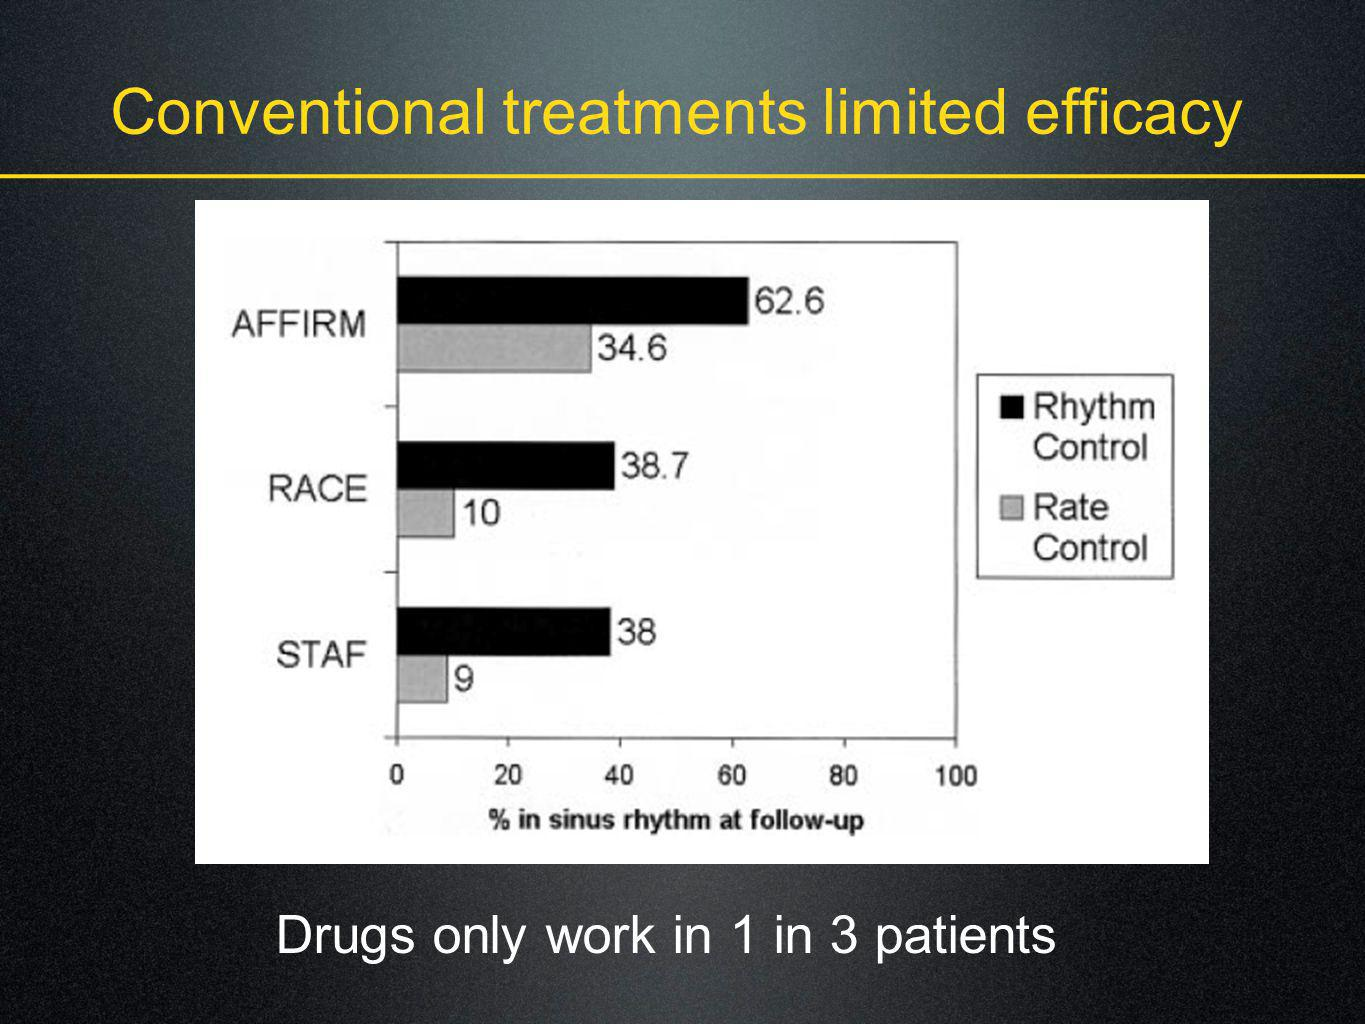 Conventional treatments limited efficacy